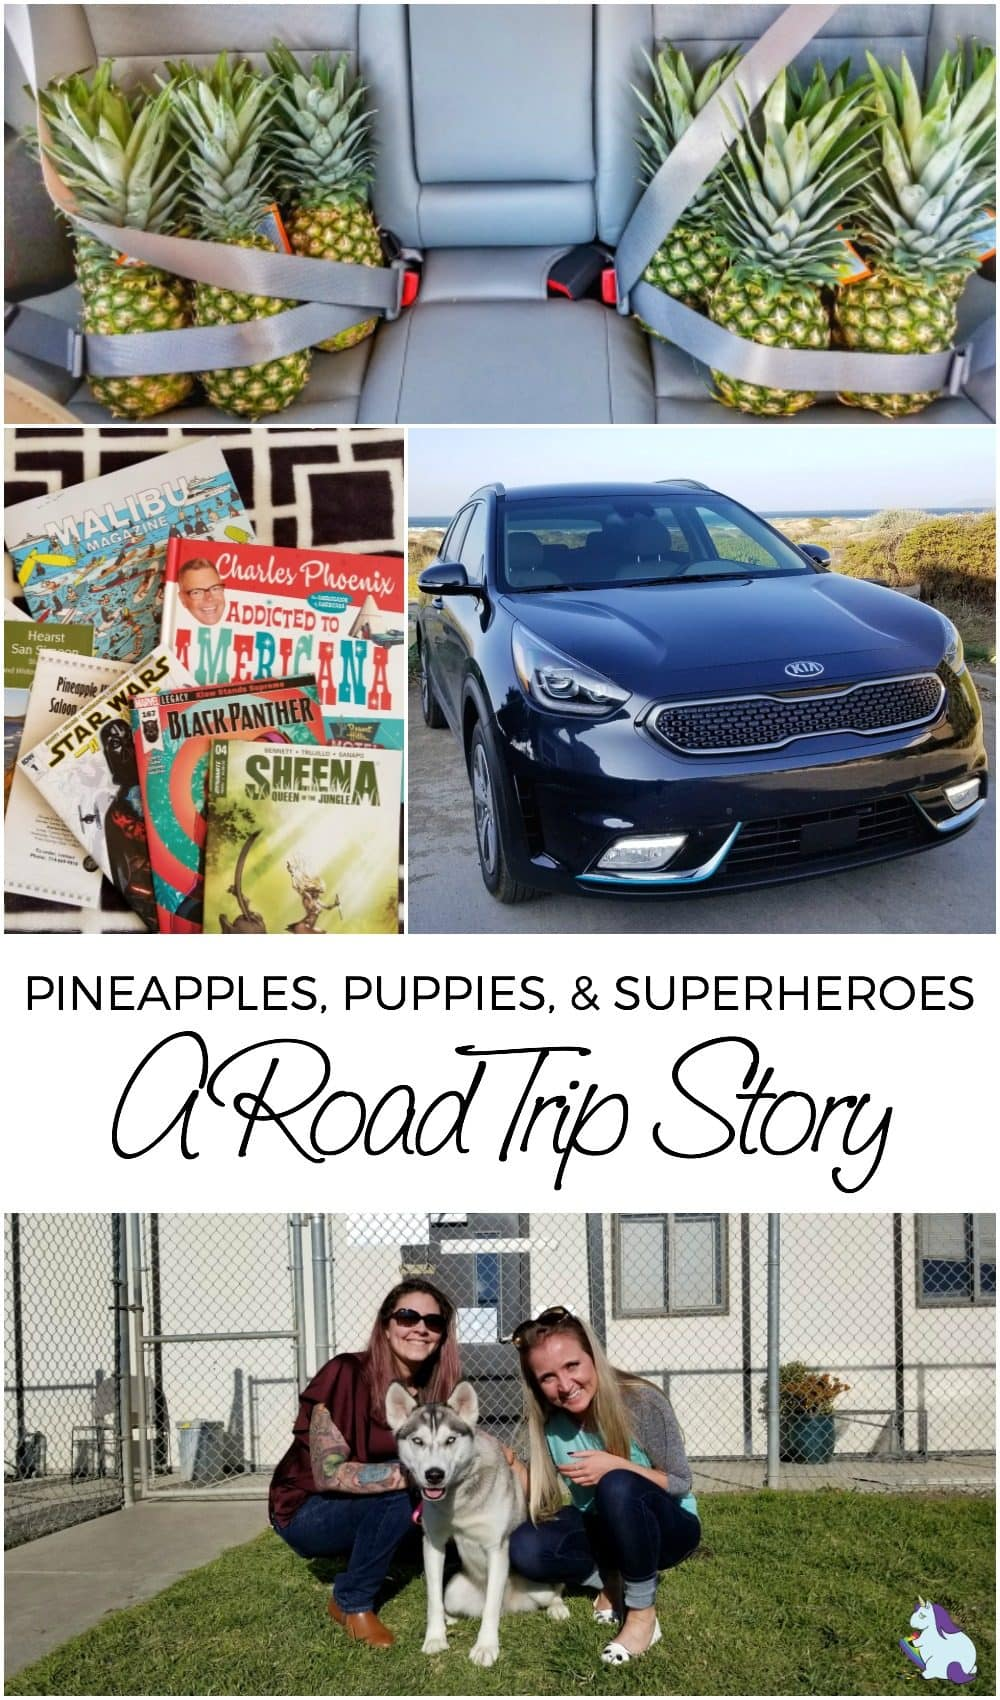 Kia Niro PHEV Road Trip - Full of Pineapples, Puppies, and Superheroes #NiroRoadTrip #KiaPartner